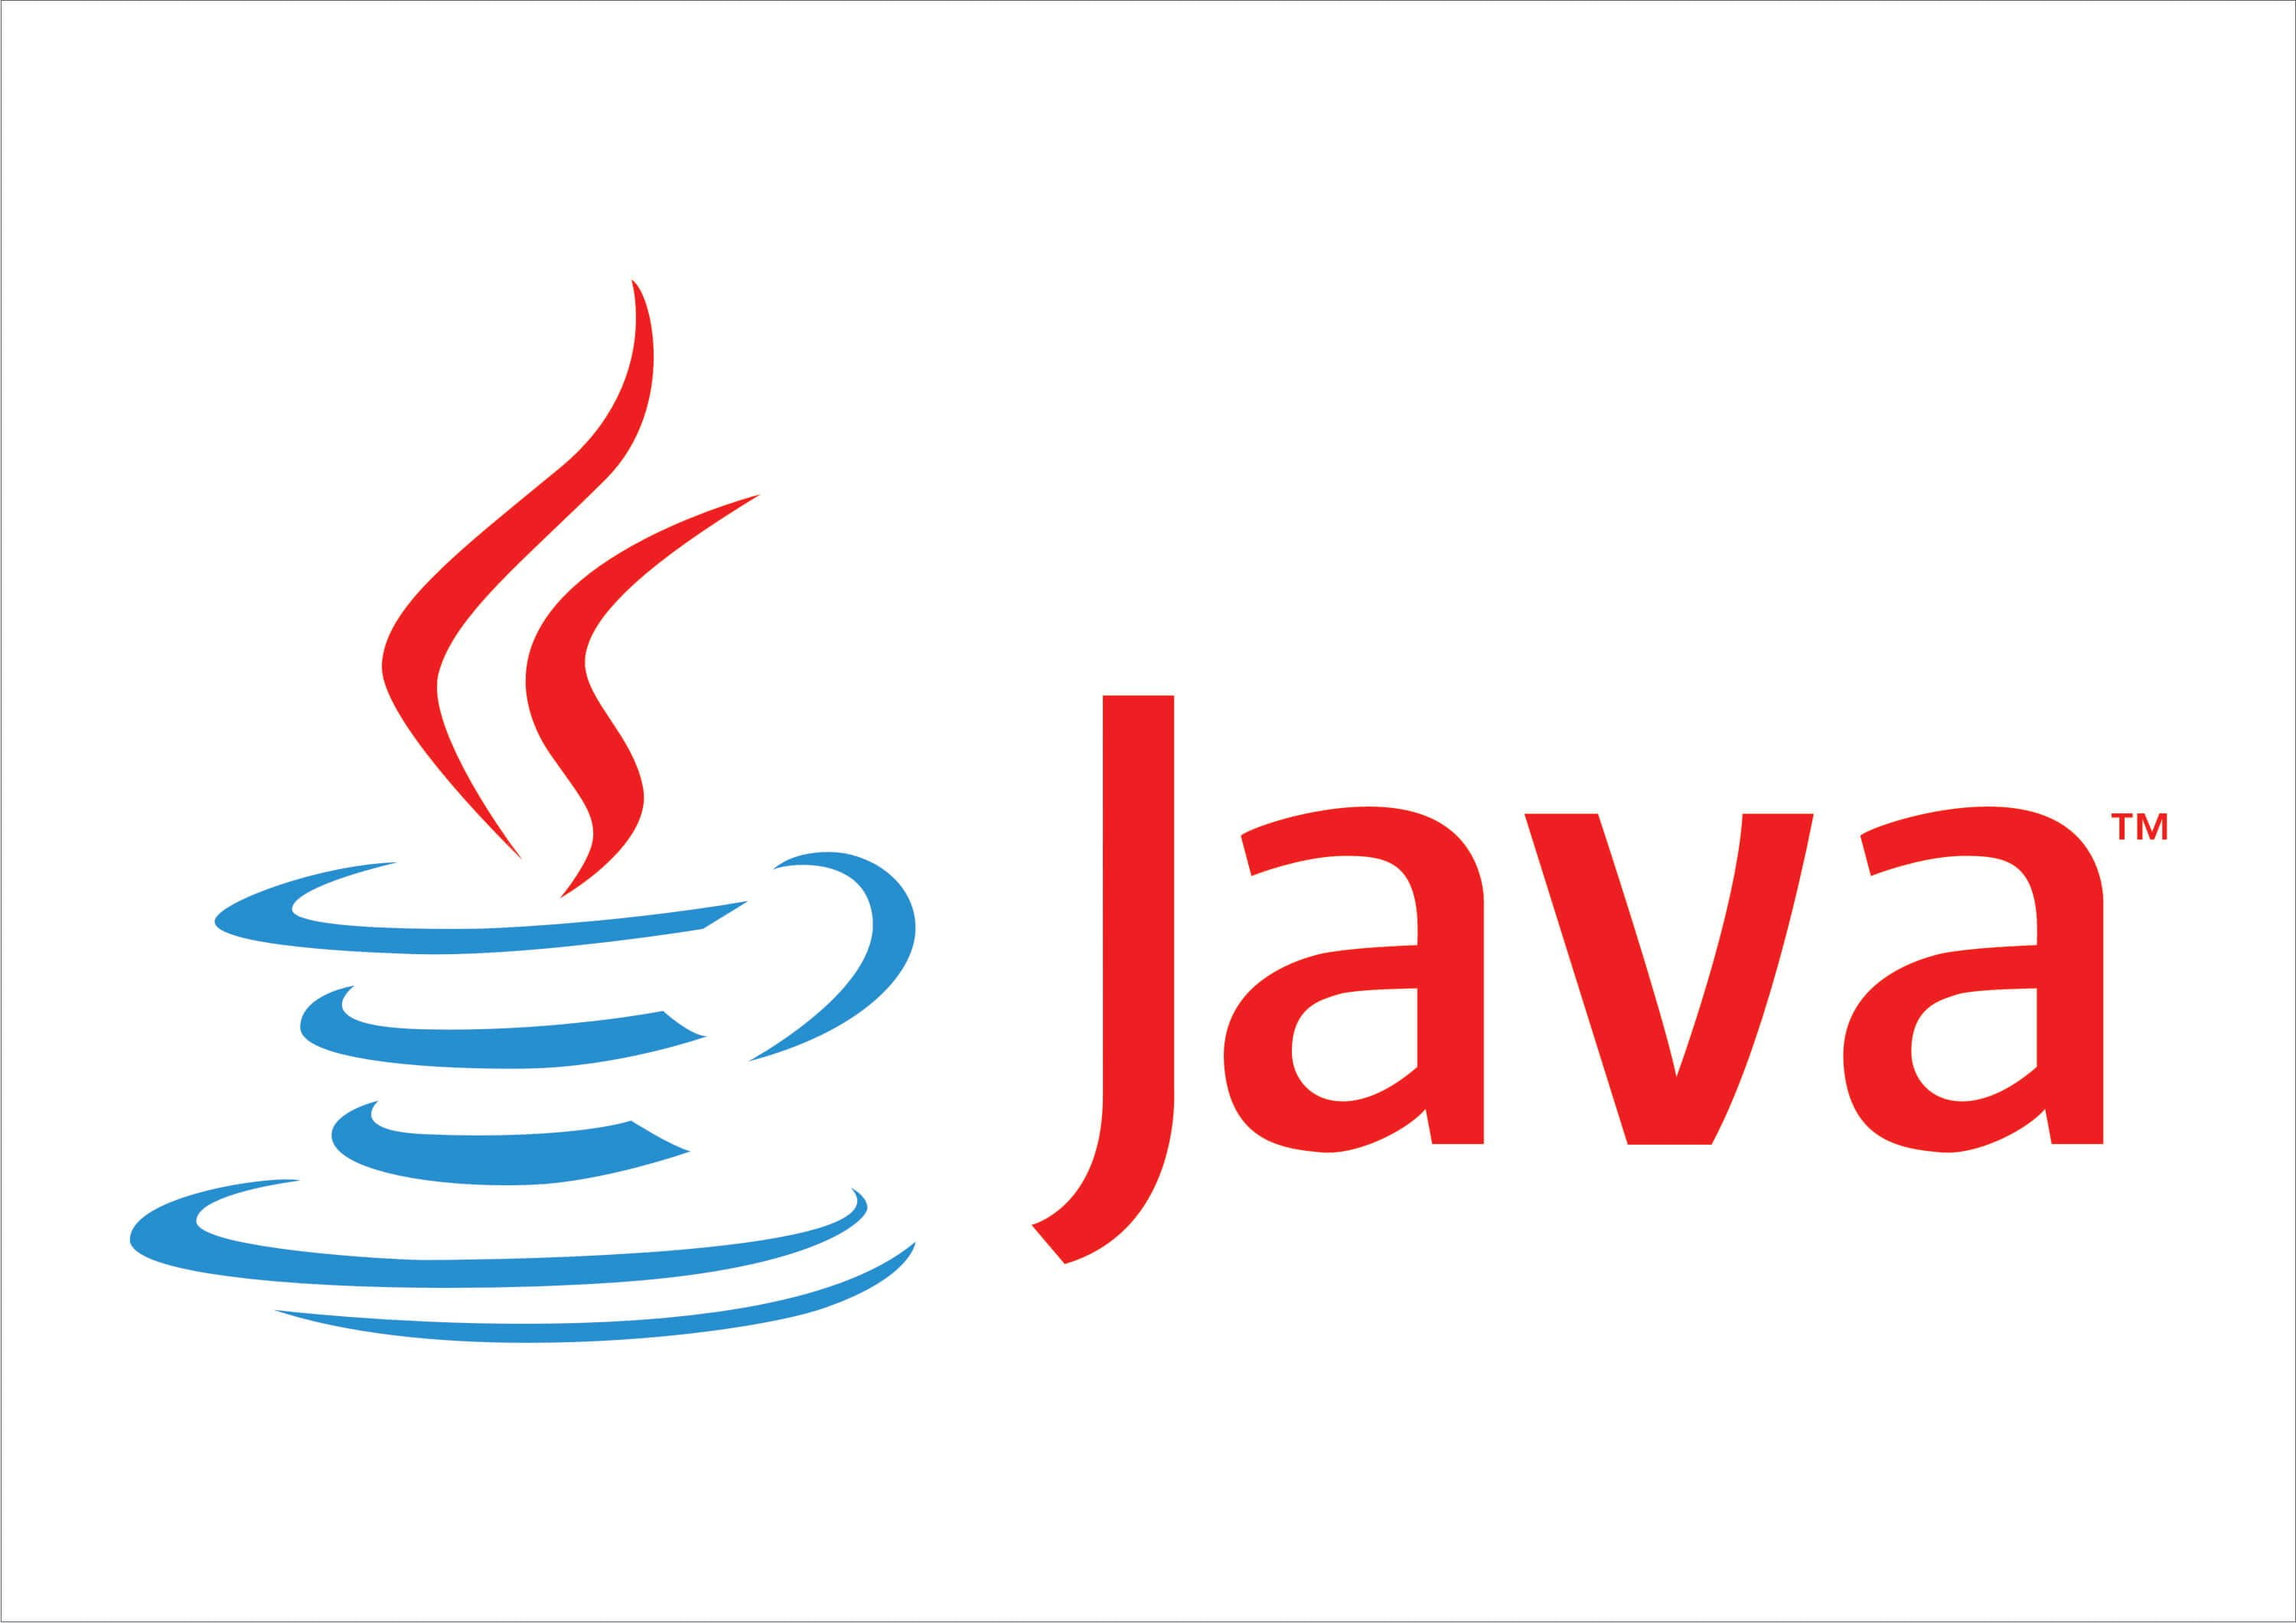 Java açılmıyor sorunu Java Application Blocked By Java Security Hatası Java Application Blocked By Java Security Hatasına Çözüm java problemi